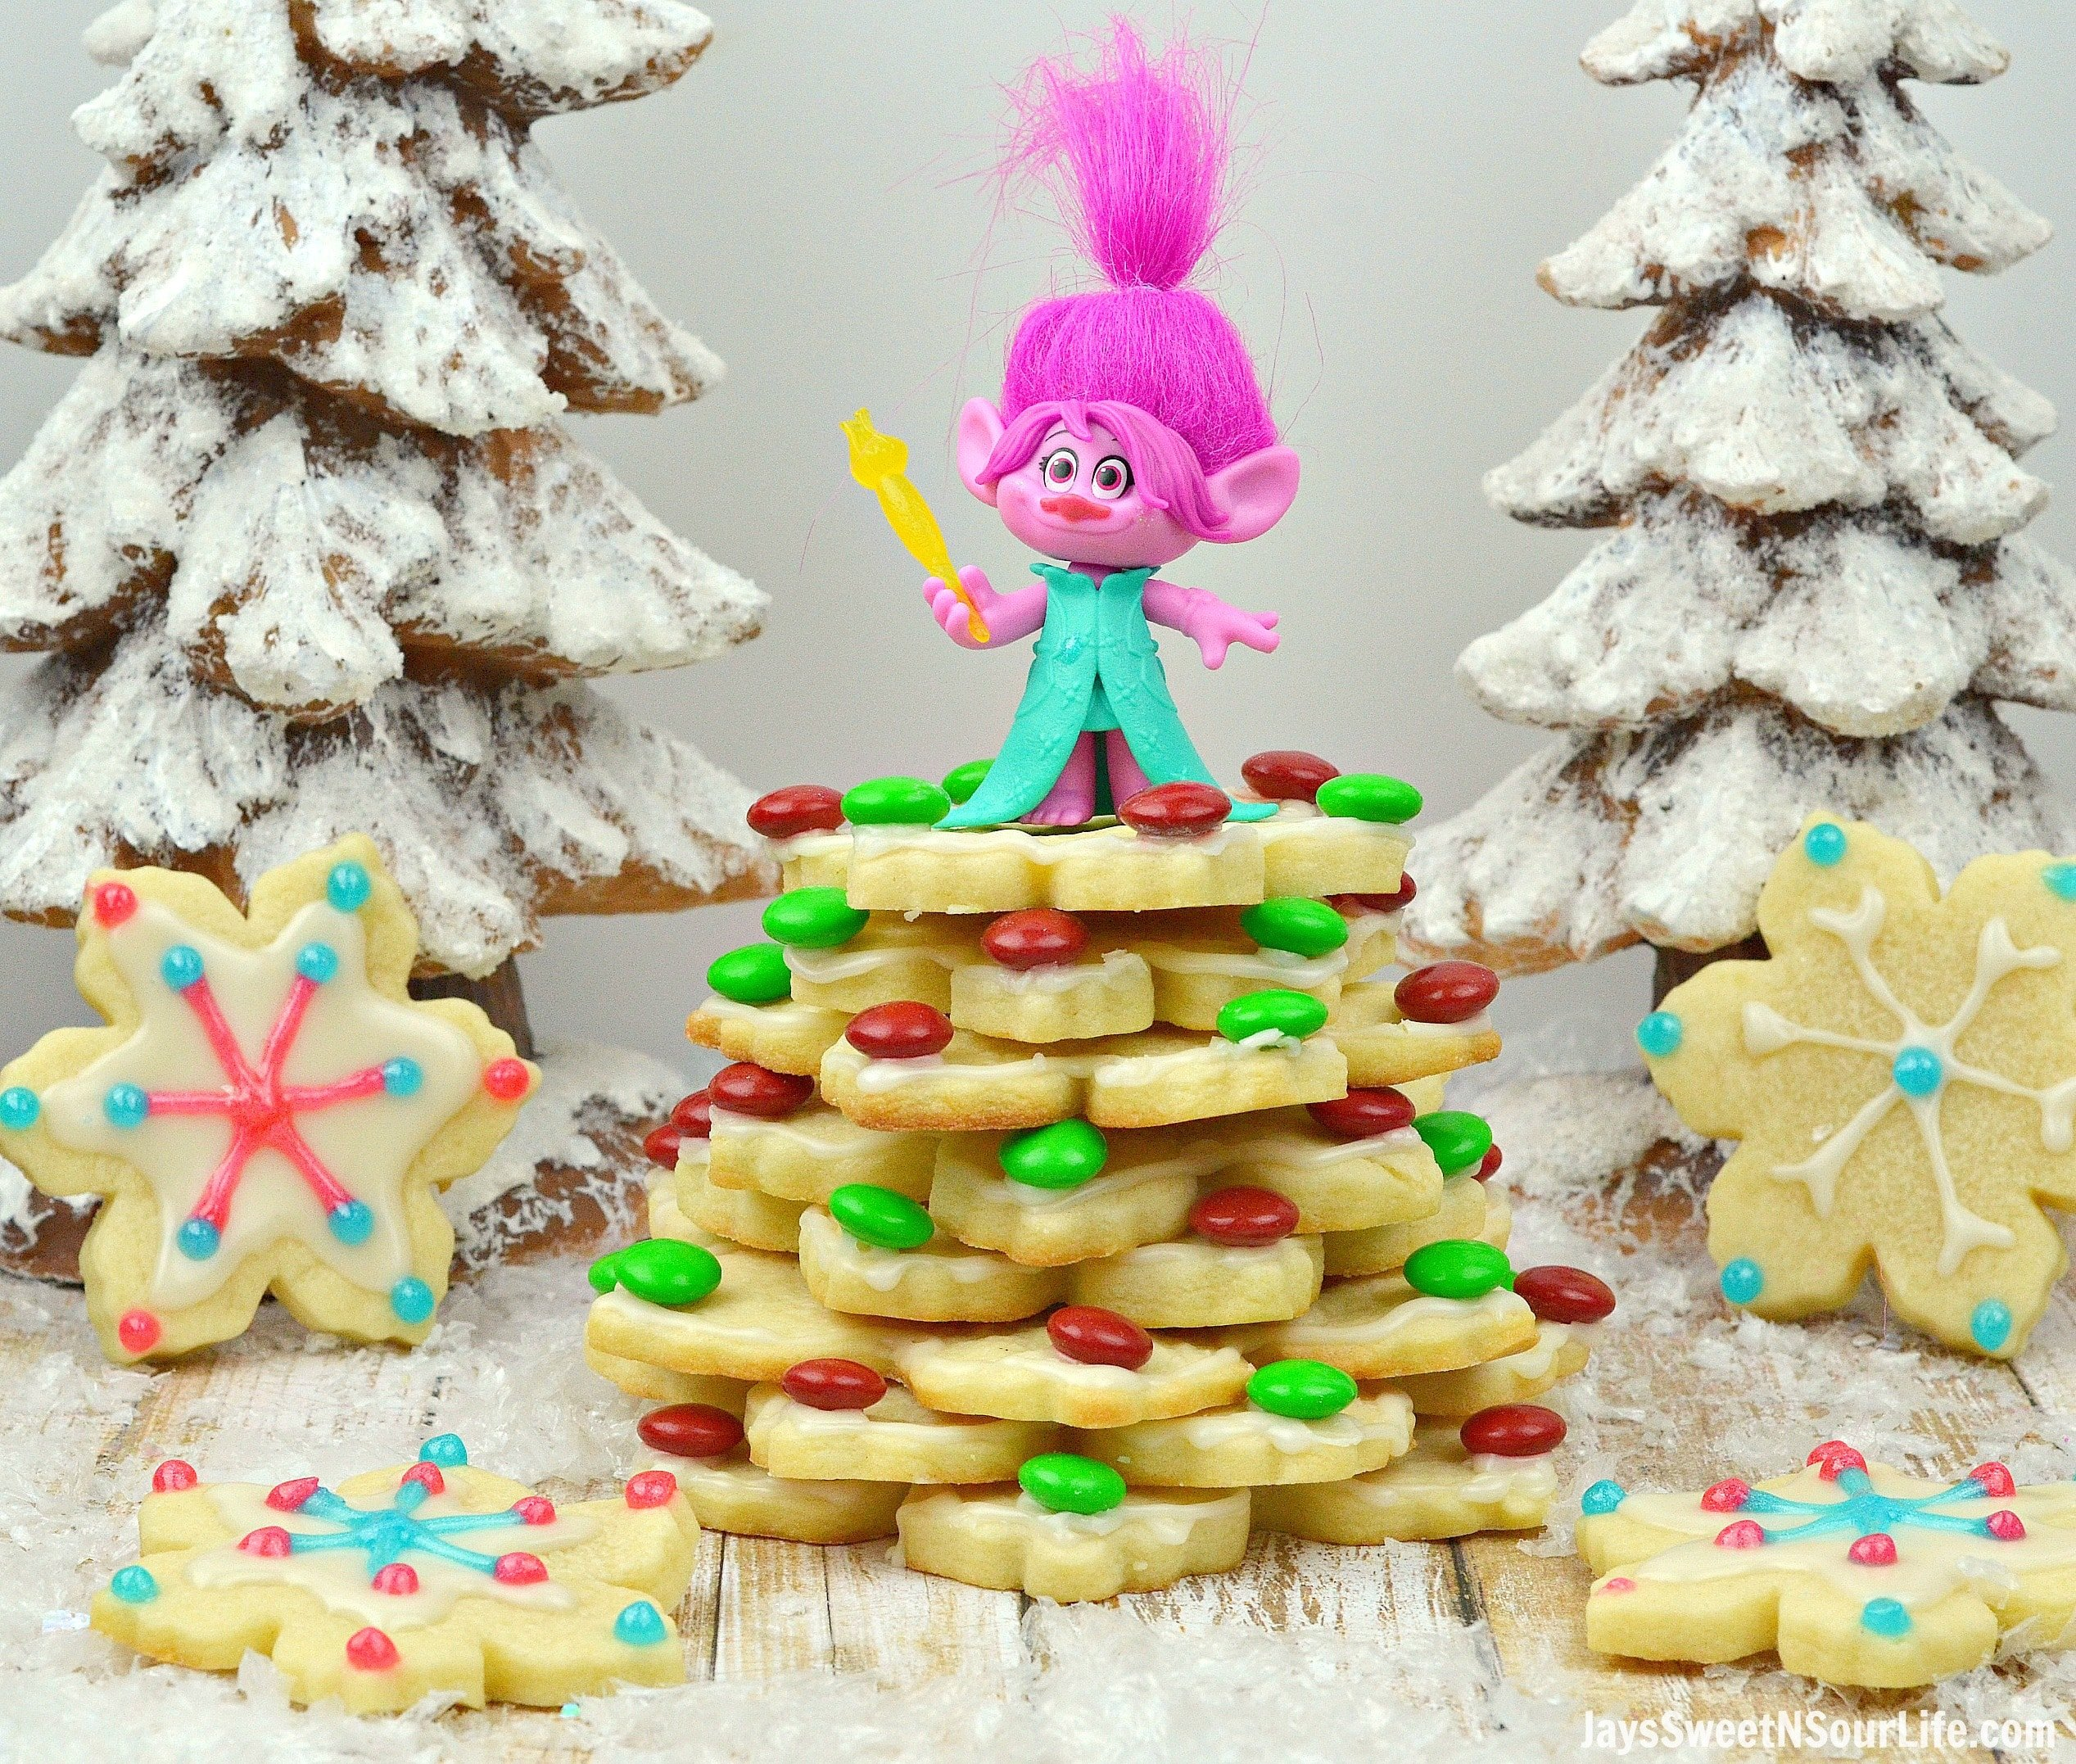 Troll's Sugar Cookie Christmas Tree